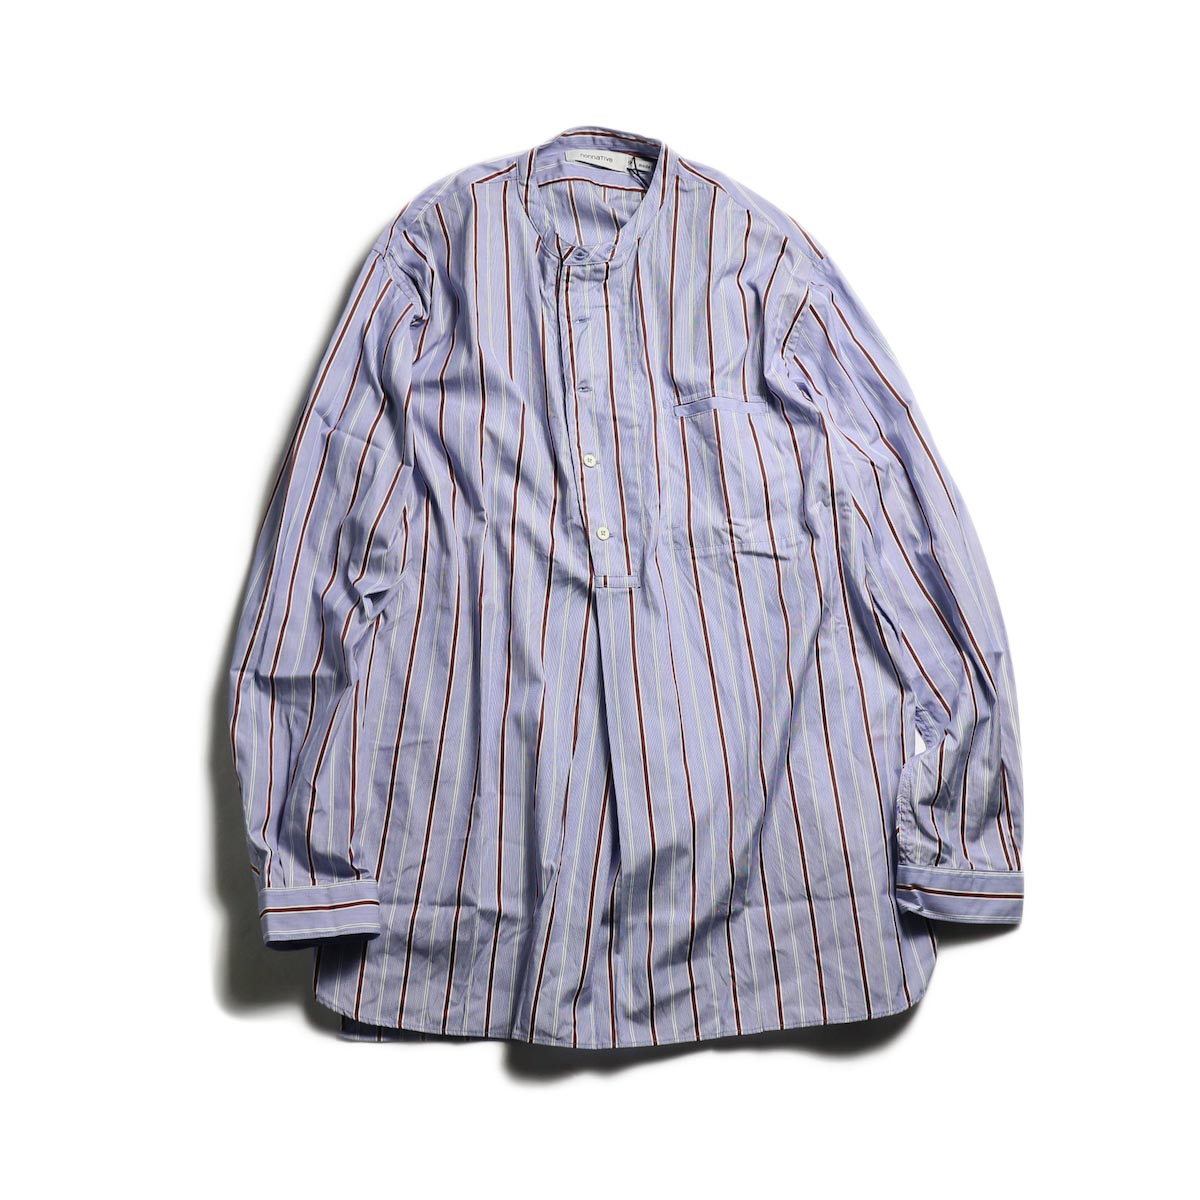 nonnative / SCIENTIST PULLOVER SHIRT COTTON SATIN MULTI STRIPE -Blue